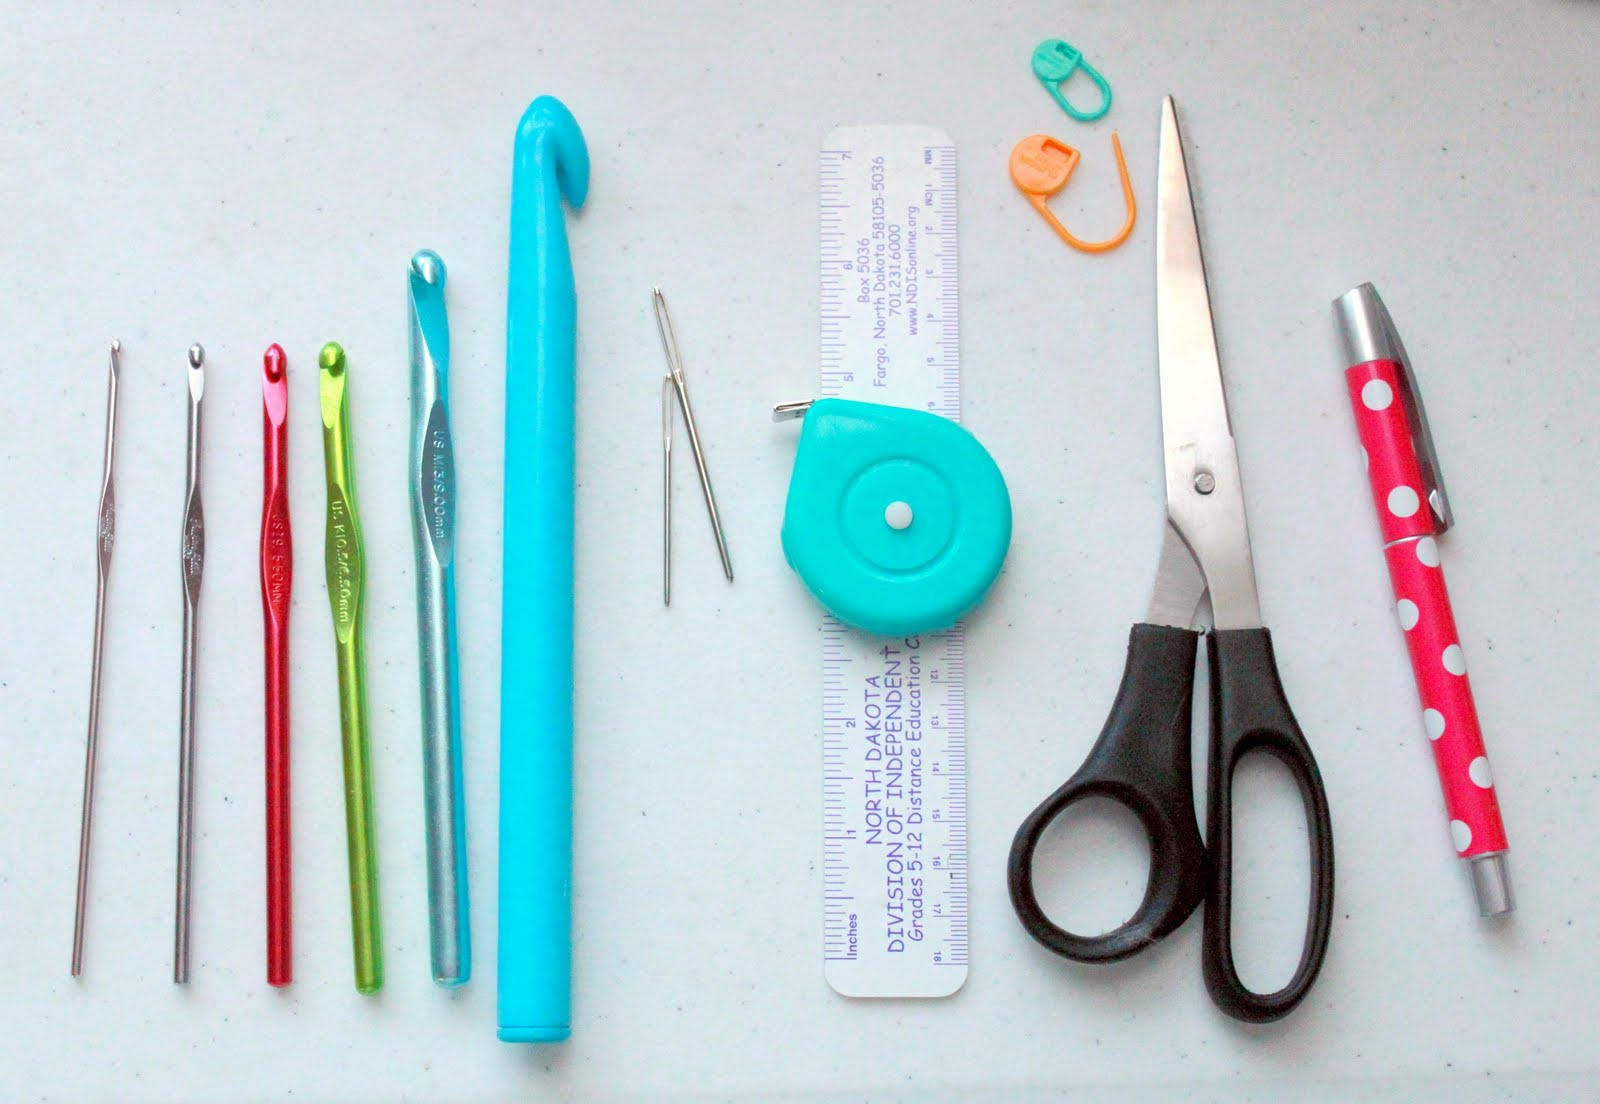 ... has been moved to MAMACHEE.COM: A. Crochet hooks and other handy tools